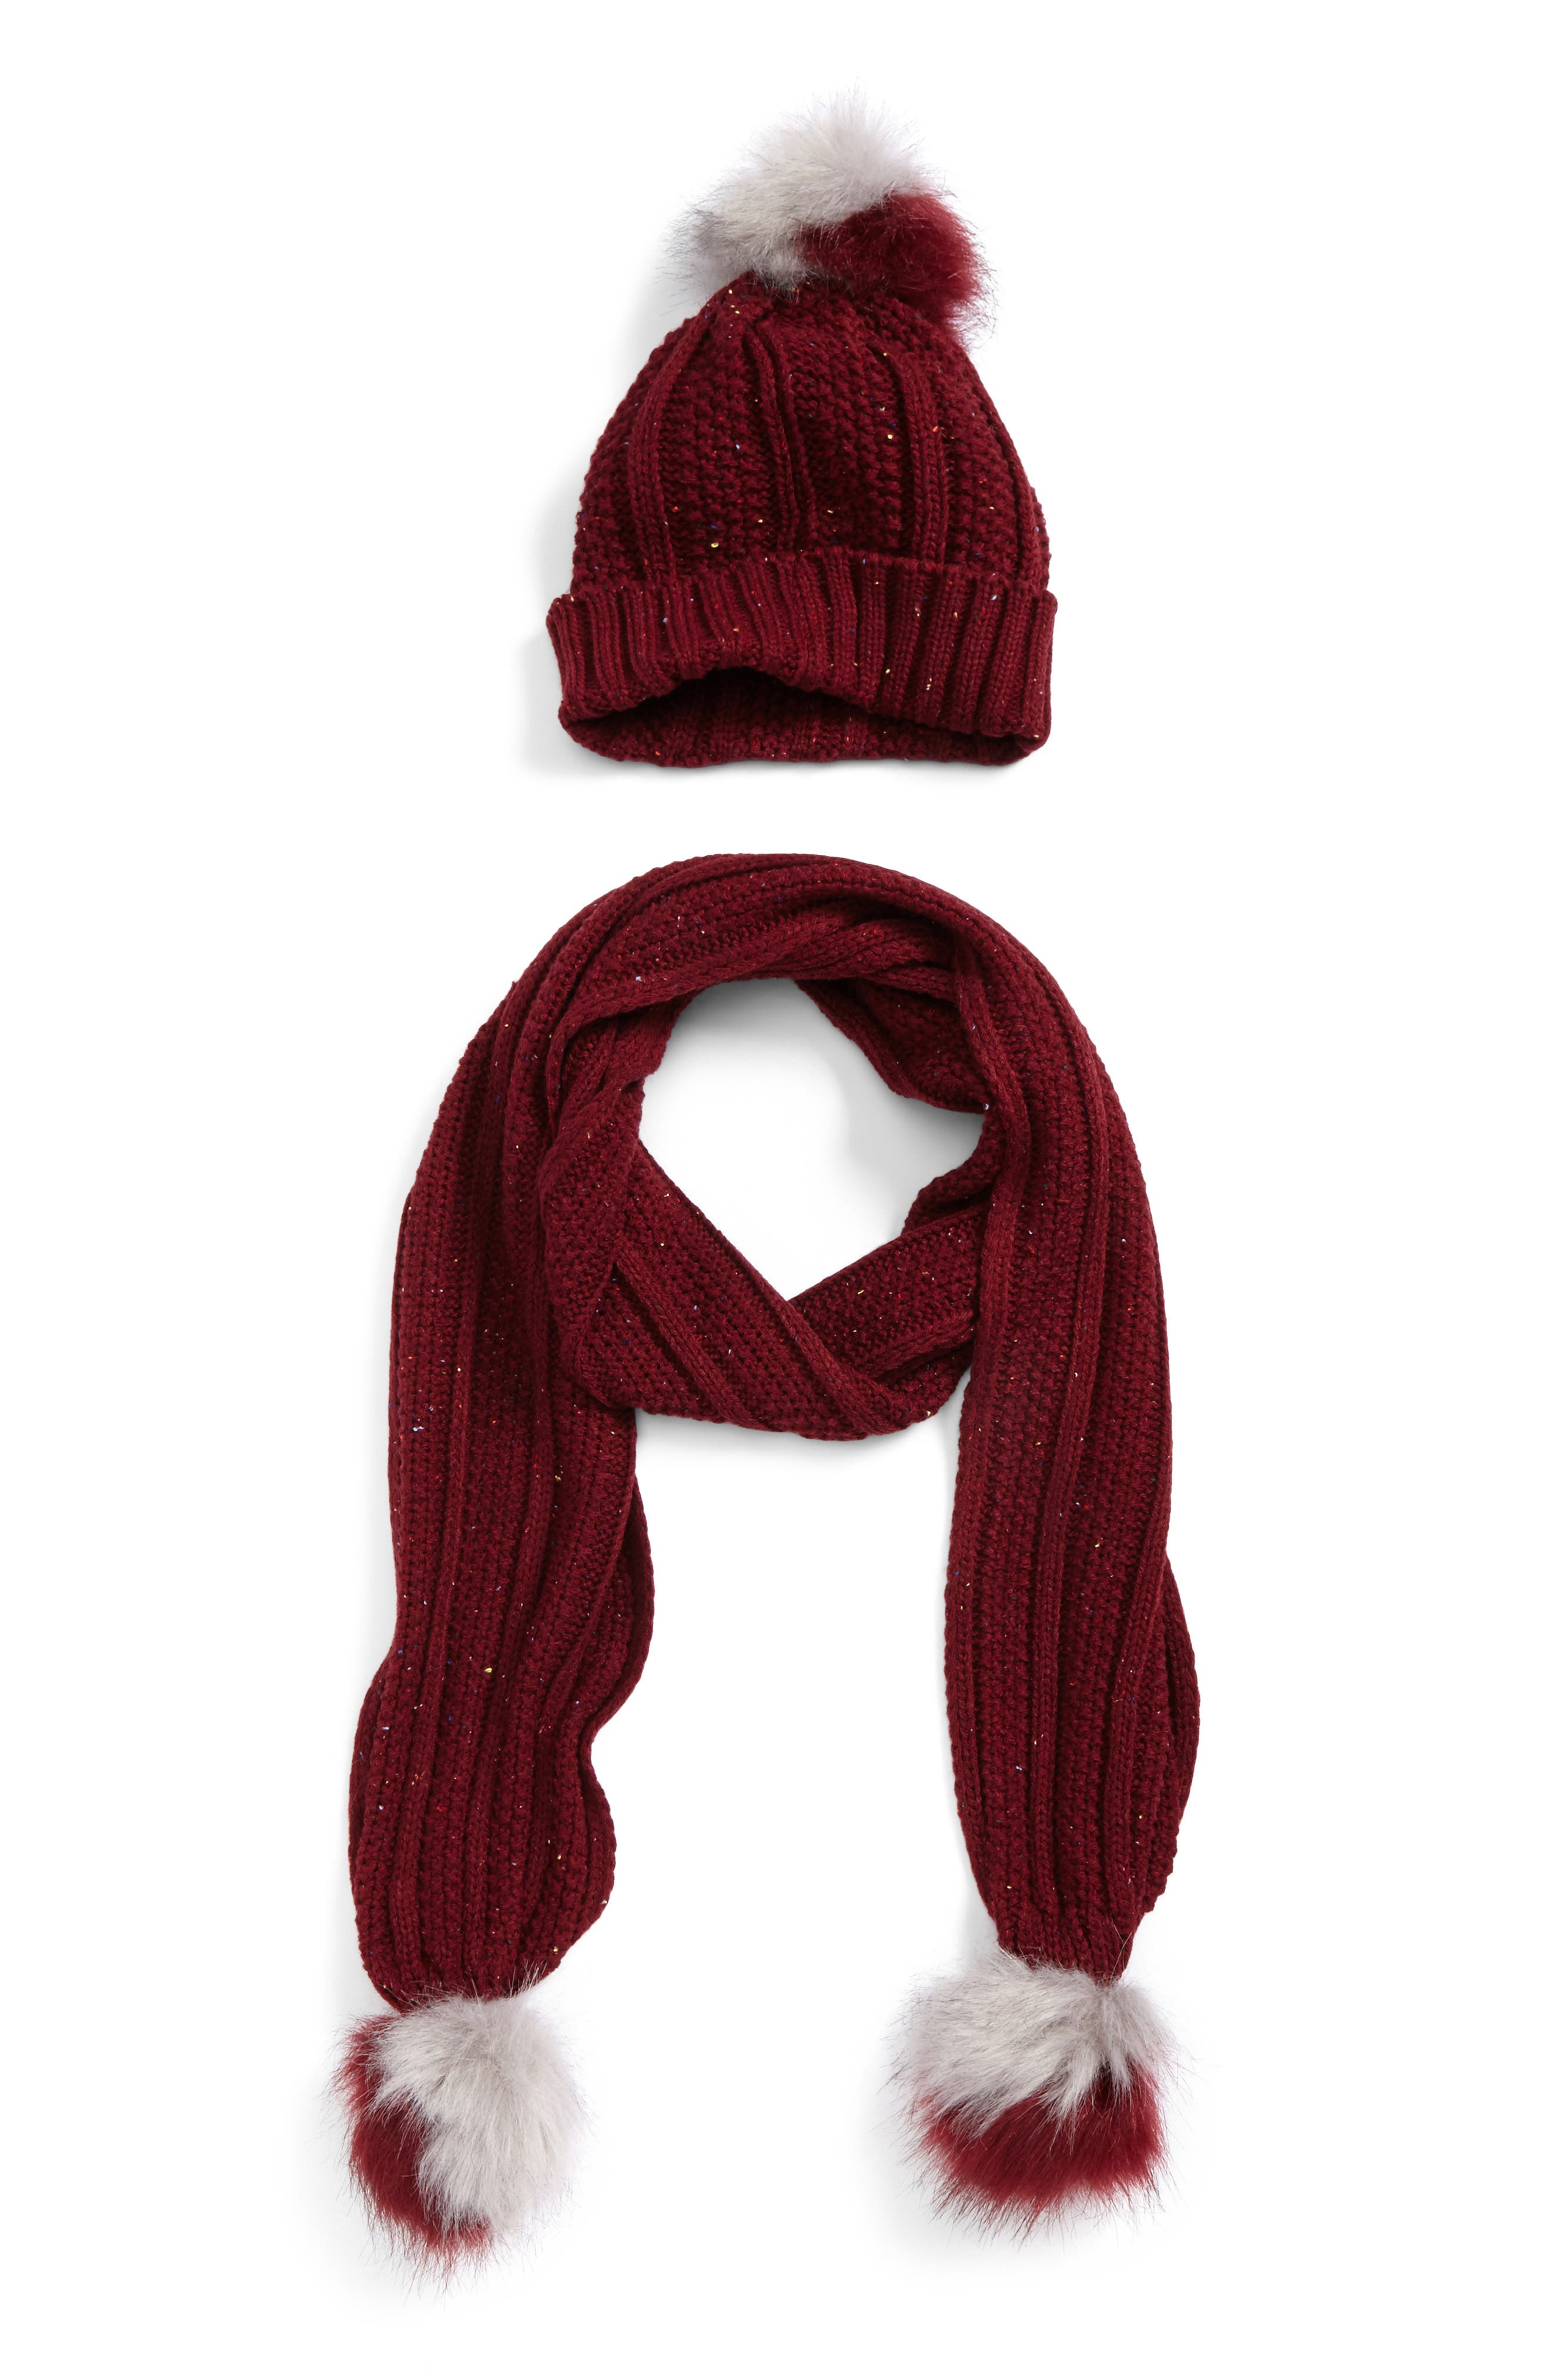 Alternate Image 1 Selected - NYC Underground Faux Fur Pompom Knit Beanie & Scarf